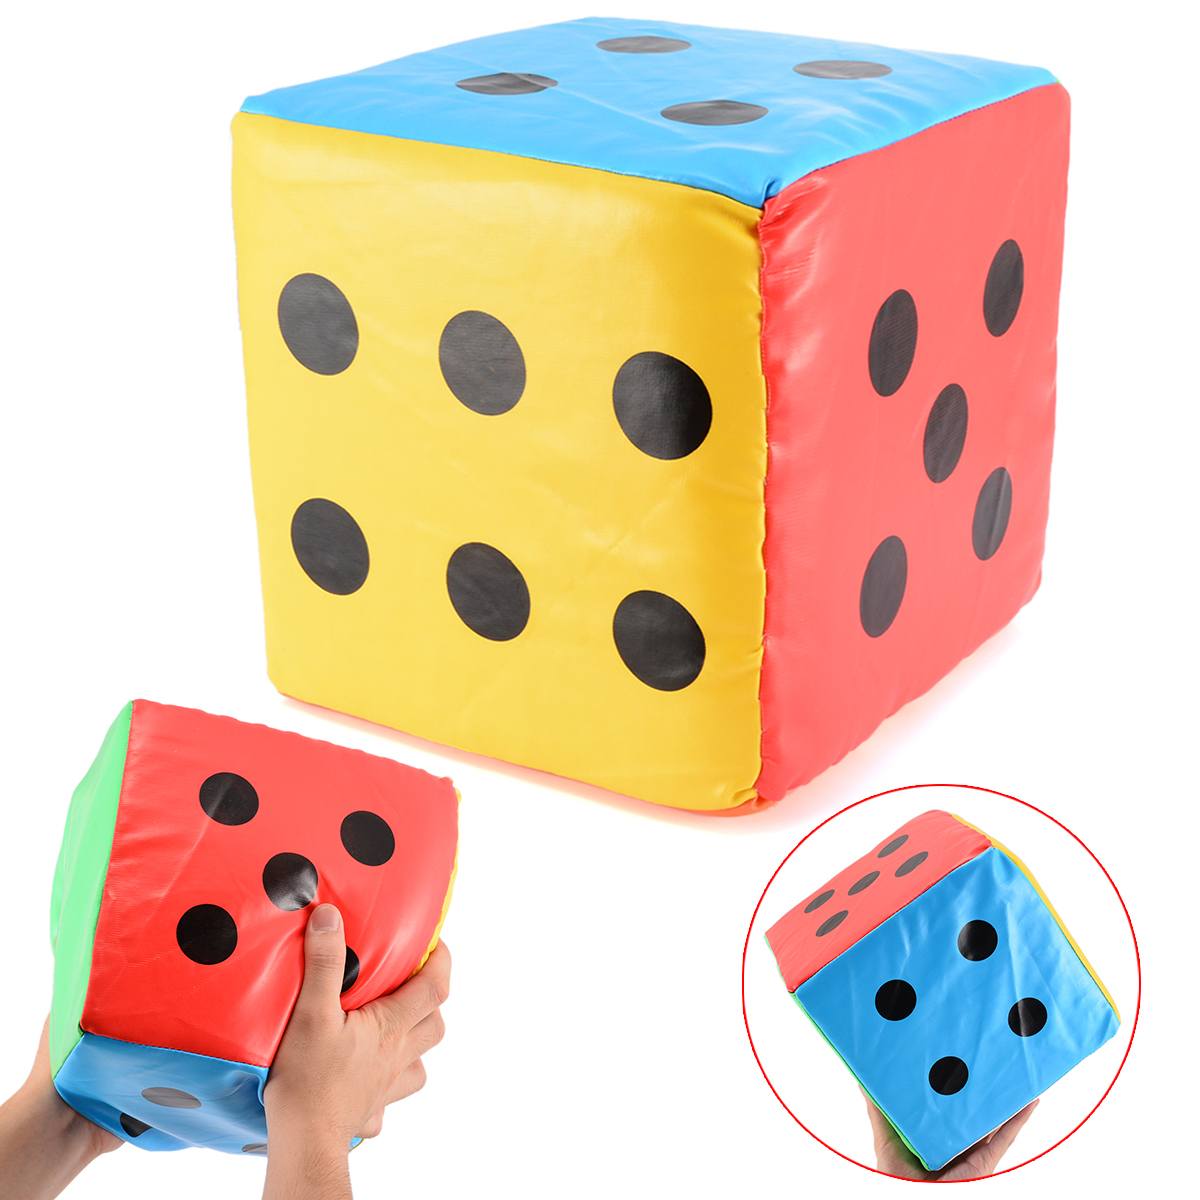 Super Big 20CM Dice Colorful Giant Sponge Faux Leather Dice Six Sided Game Toy Party Playing School Kids Funny Outdoor Game Dice